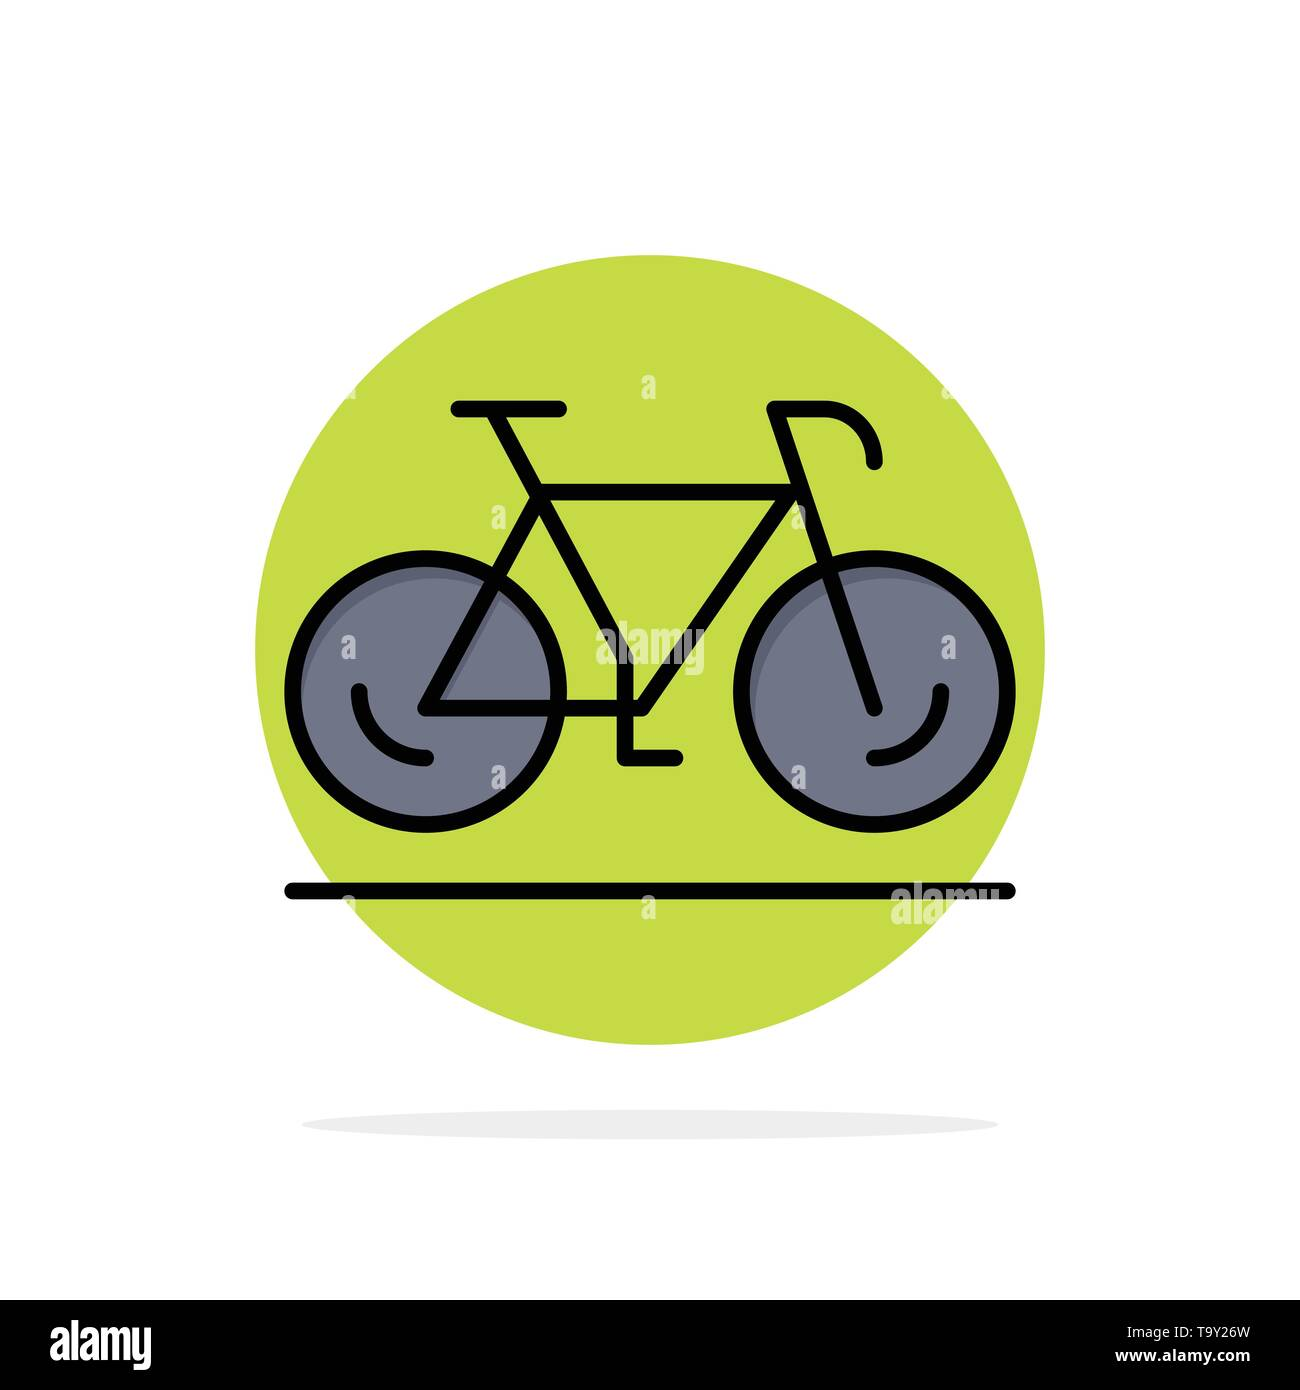 Bicycle, Movement, Walk, Sport Abstract Circle Background Flat color Icon - Stock Image